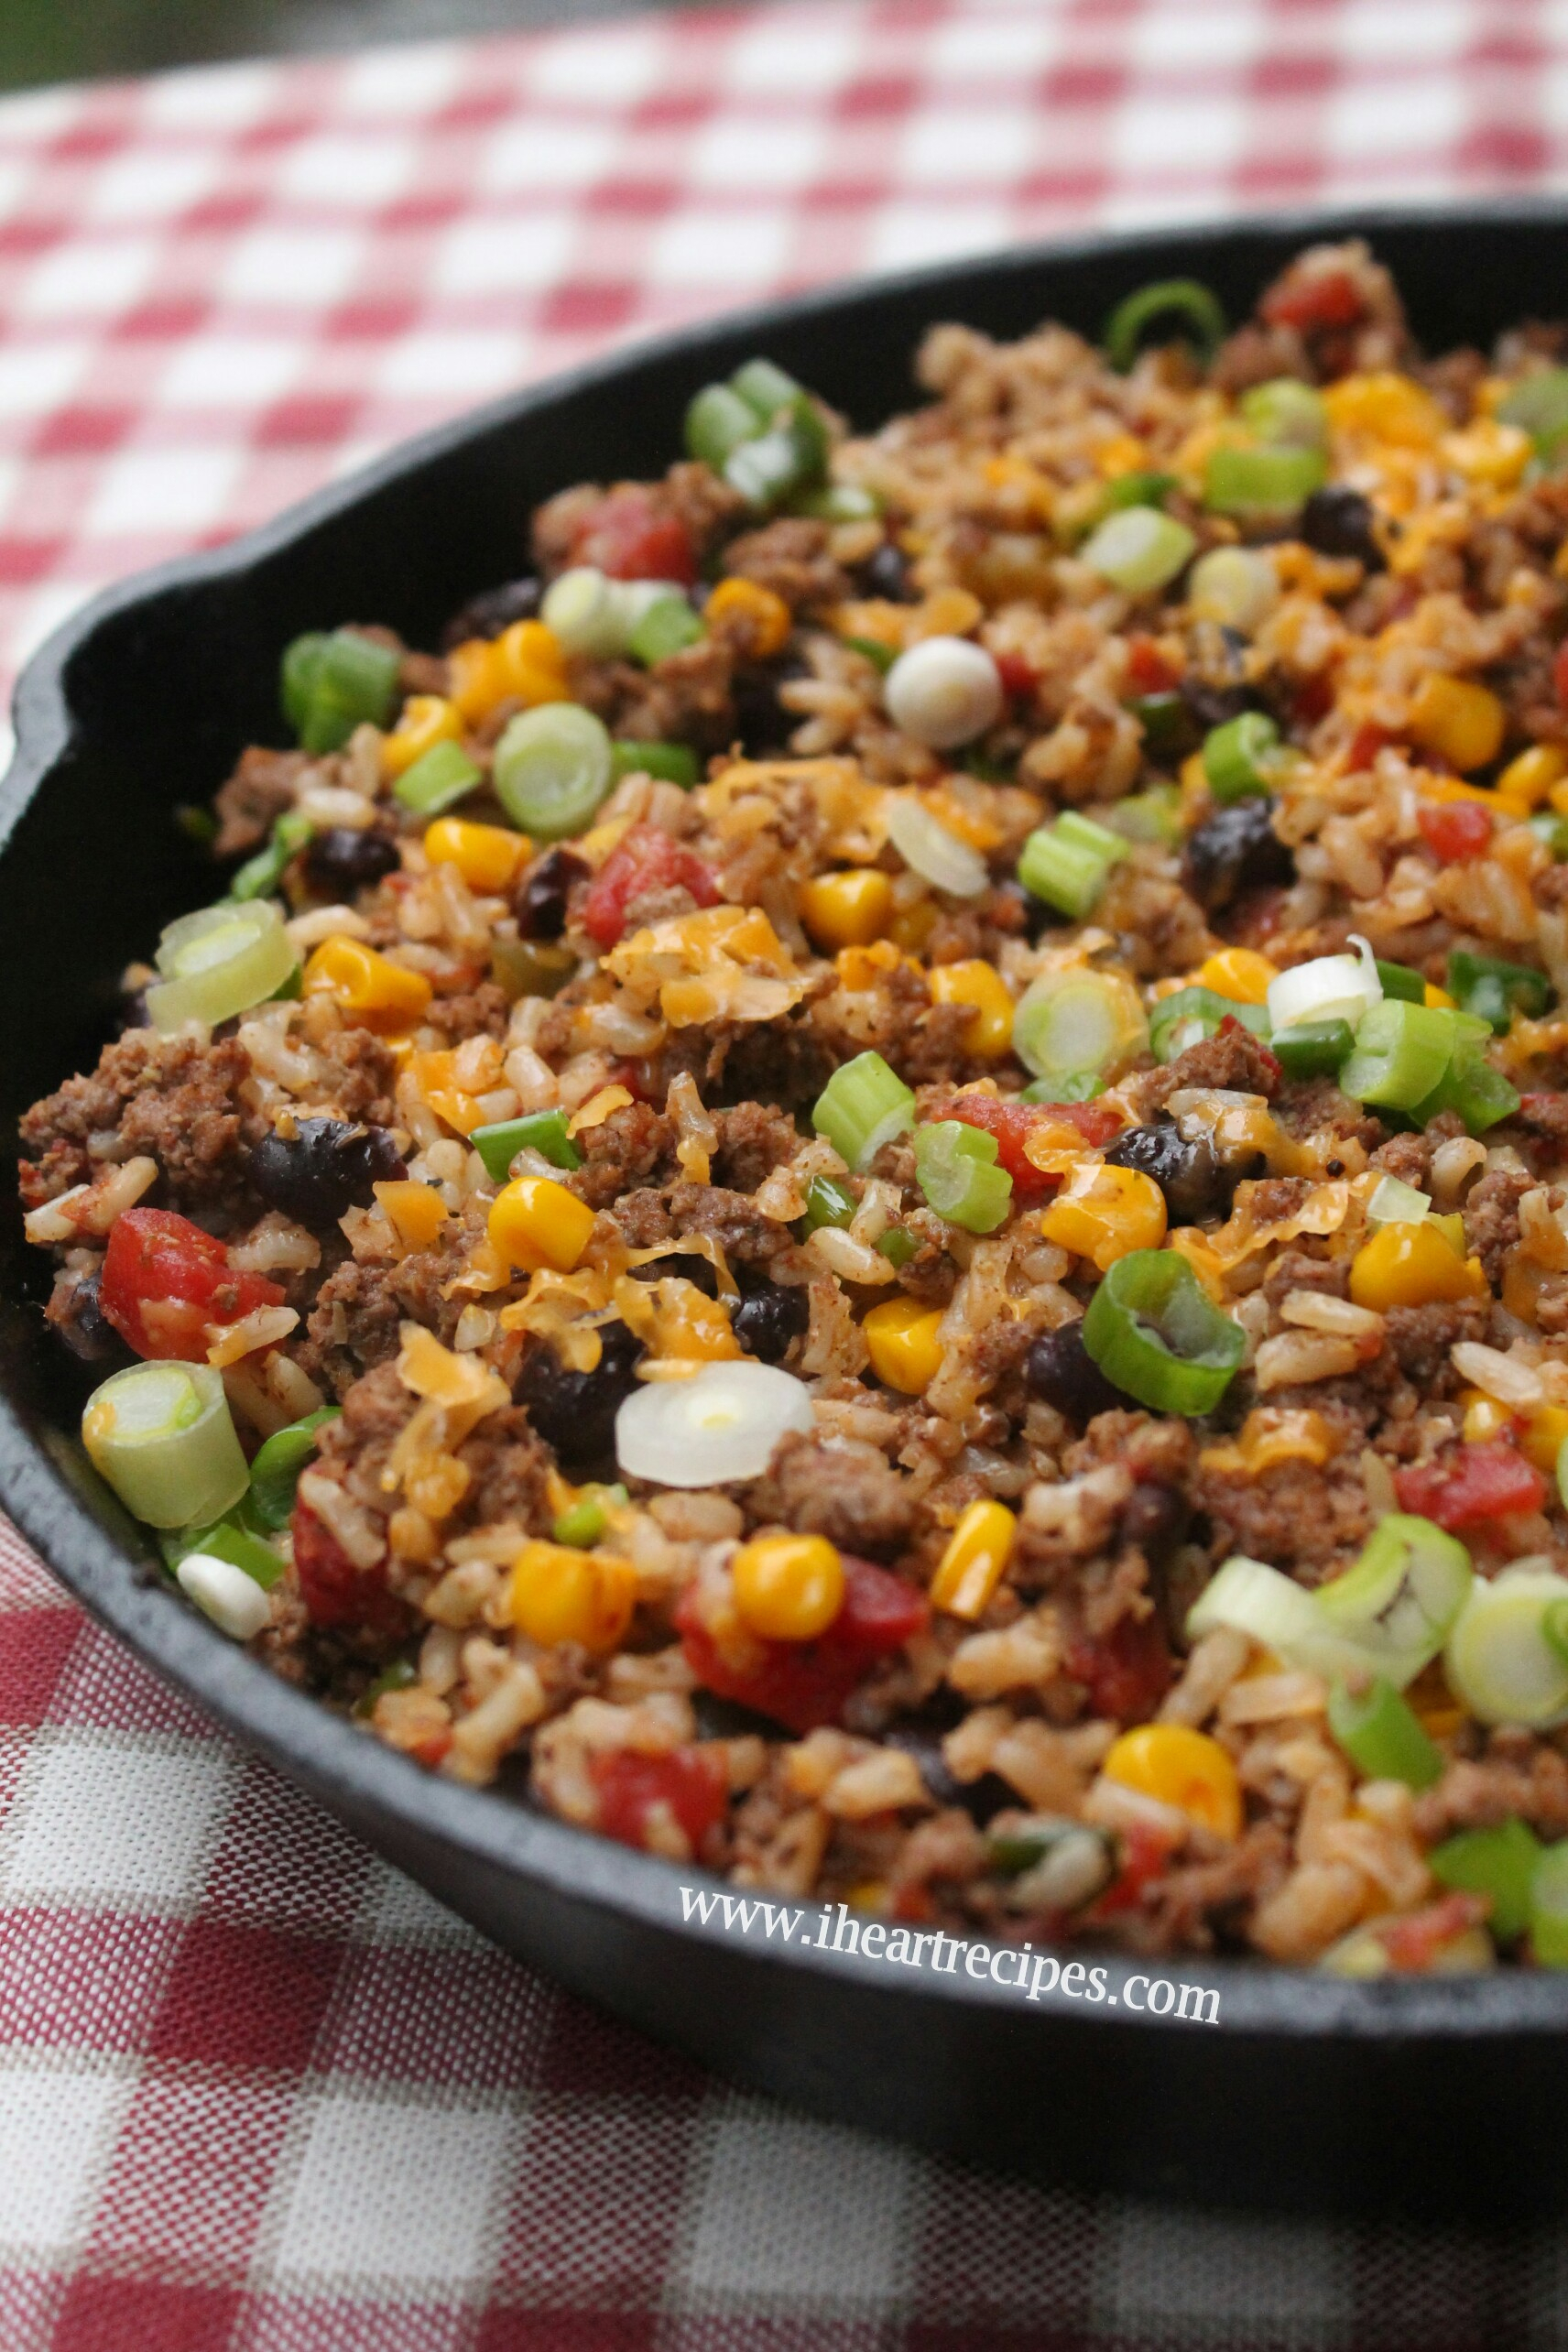 10 Lovely Beef Recipe Ideas For Dinner tex mex beef skillet i heart recipes 33 2021